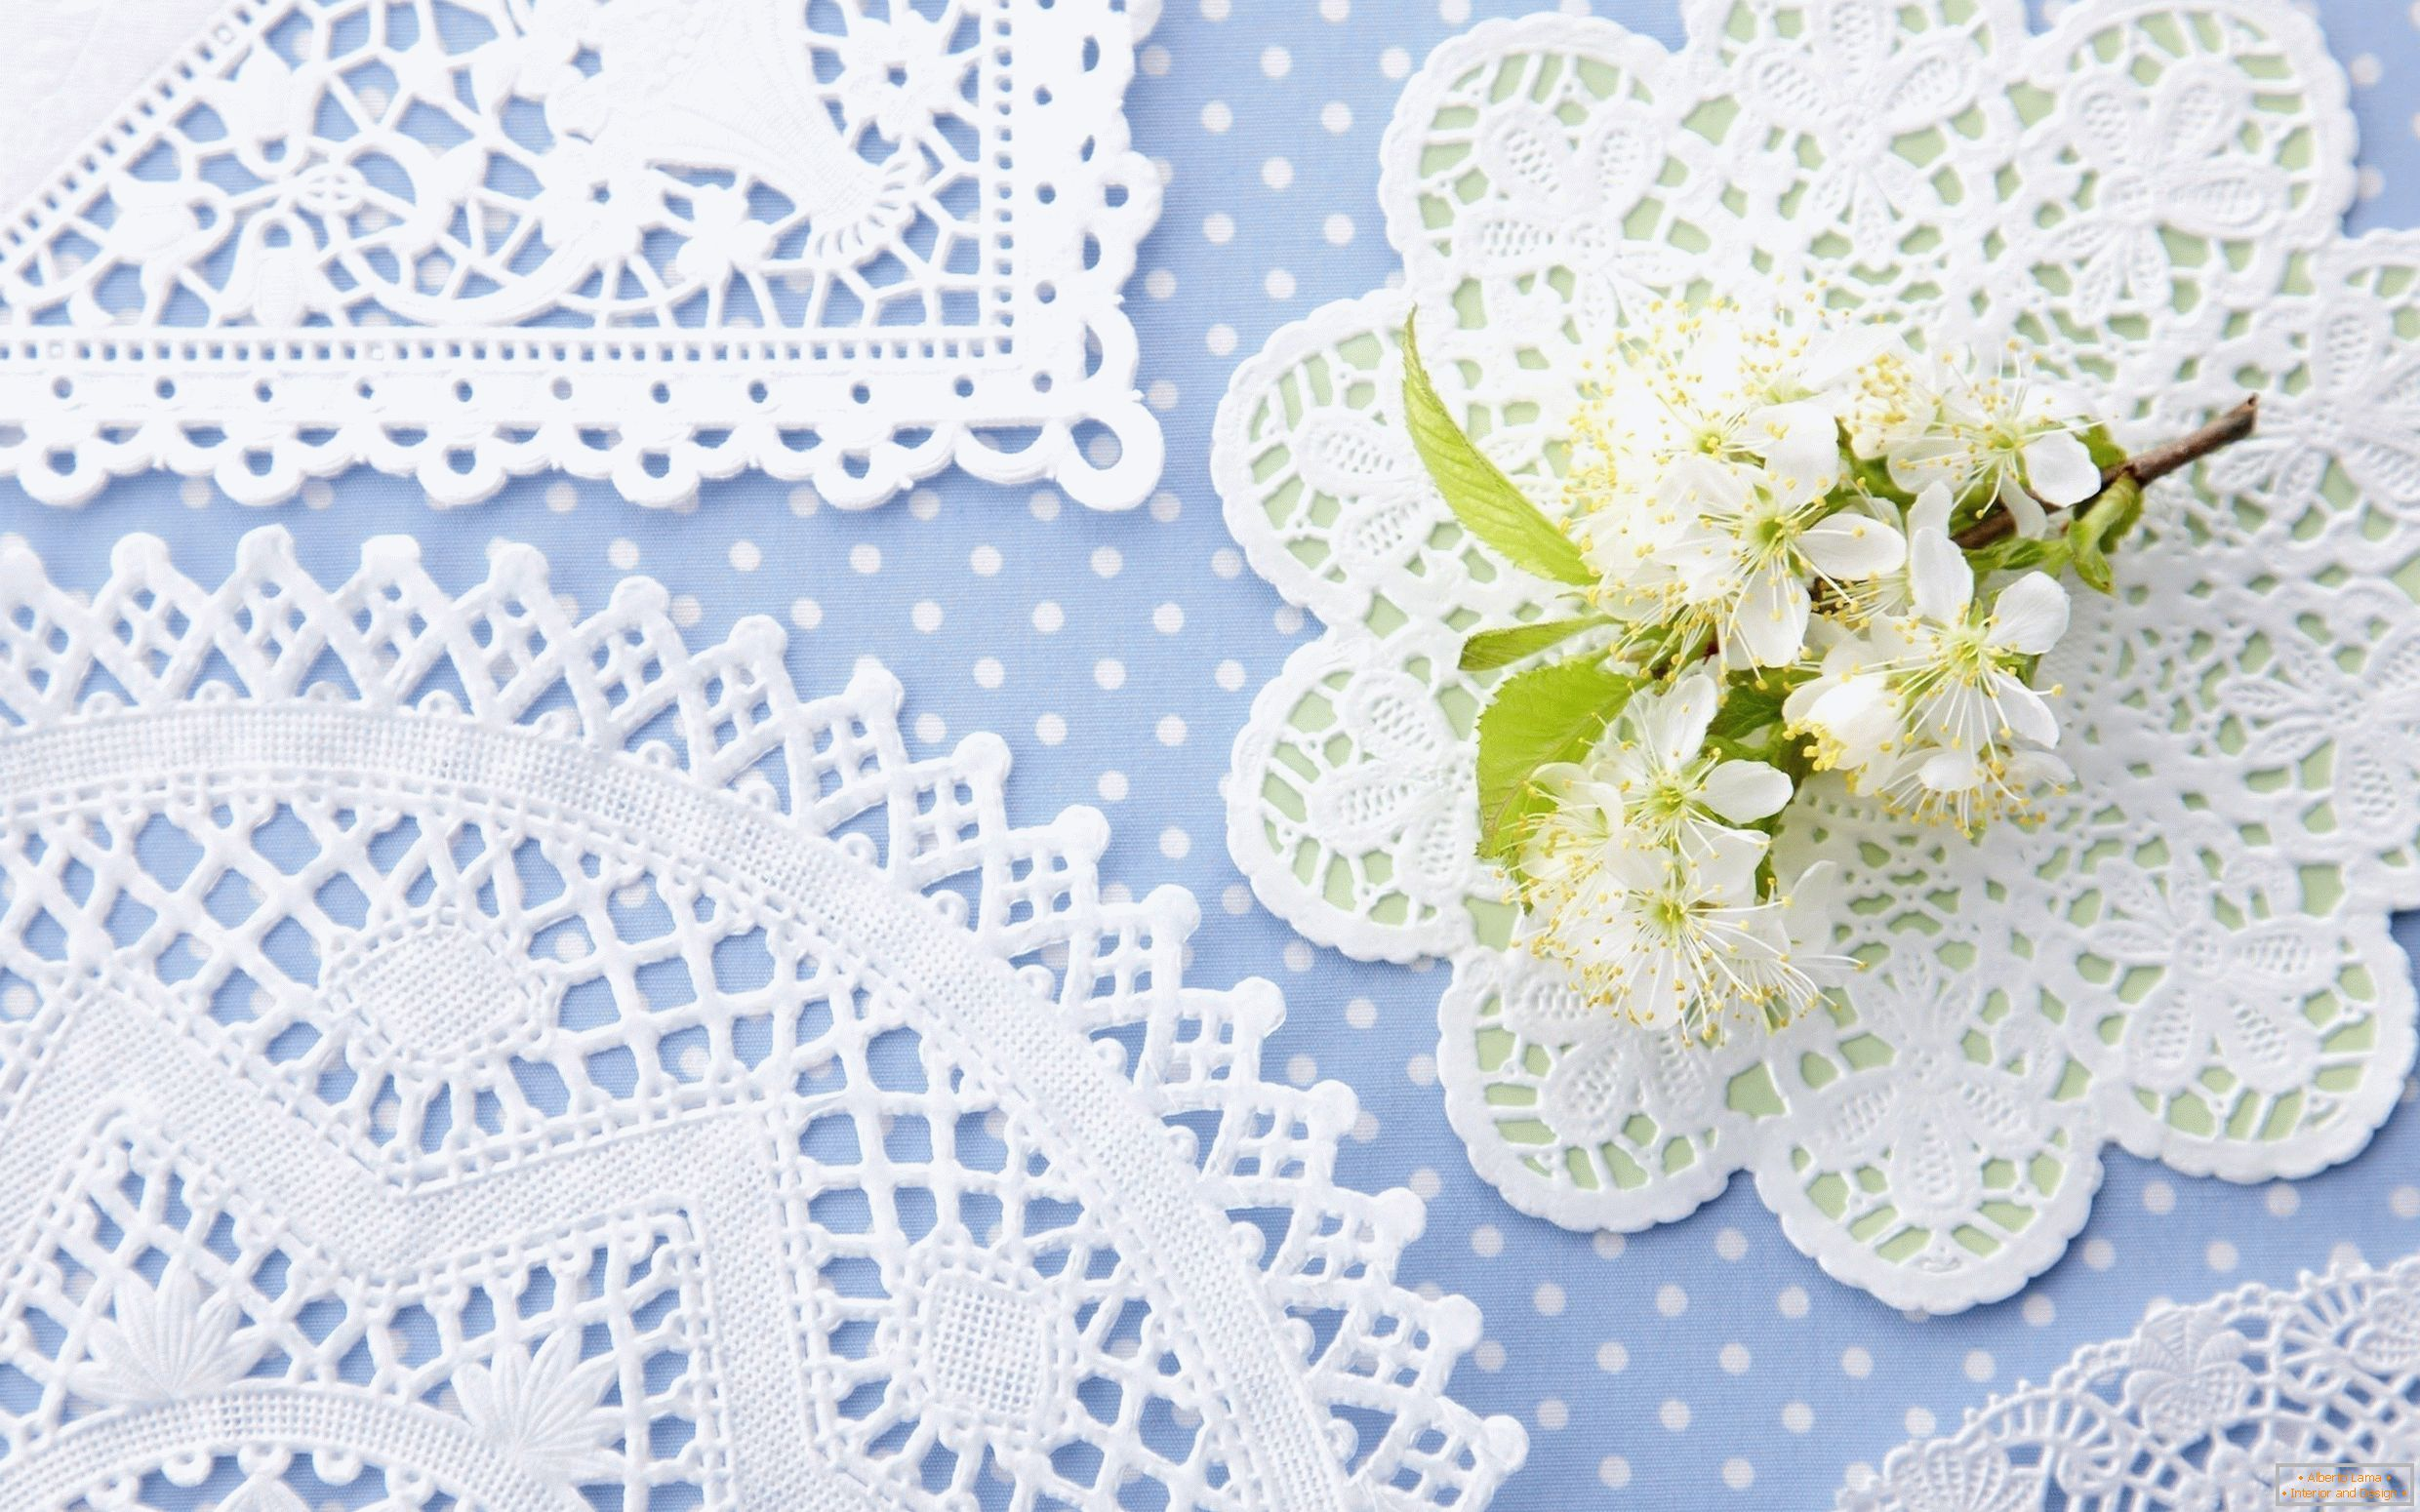 Lace napkins for home